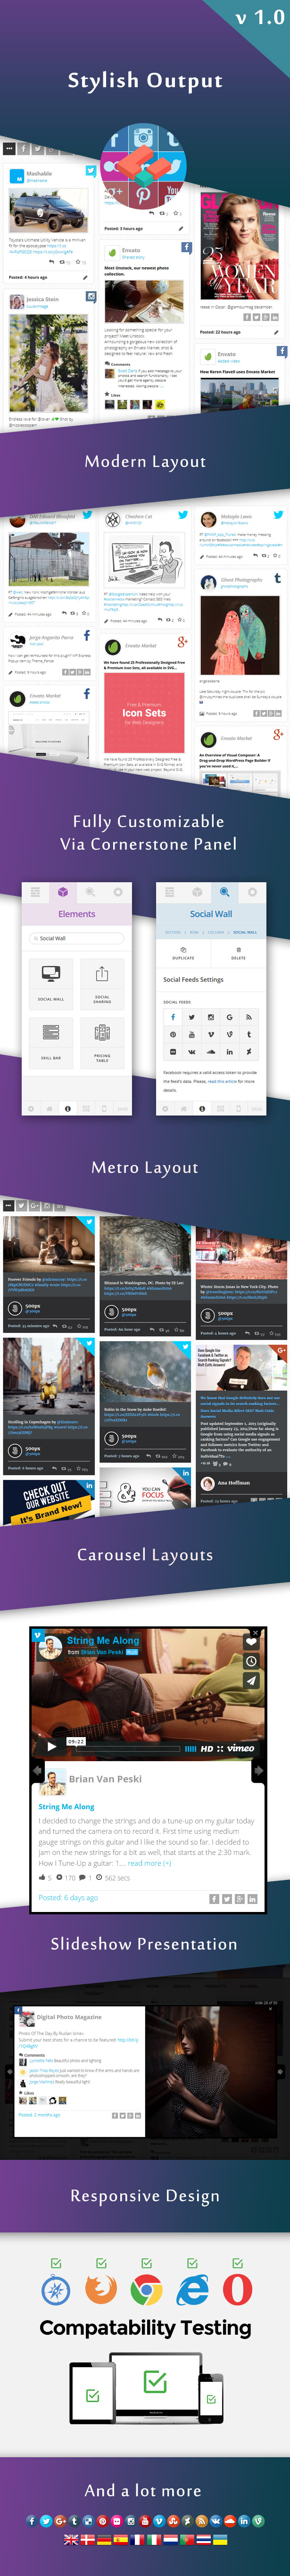 Social Wall extension for Cornerstone - 3